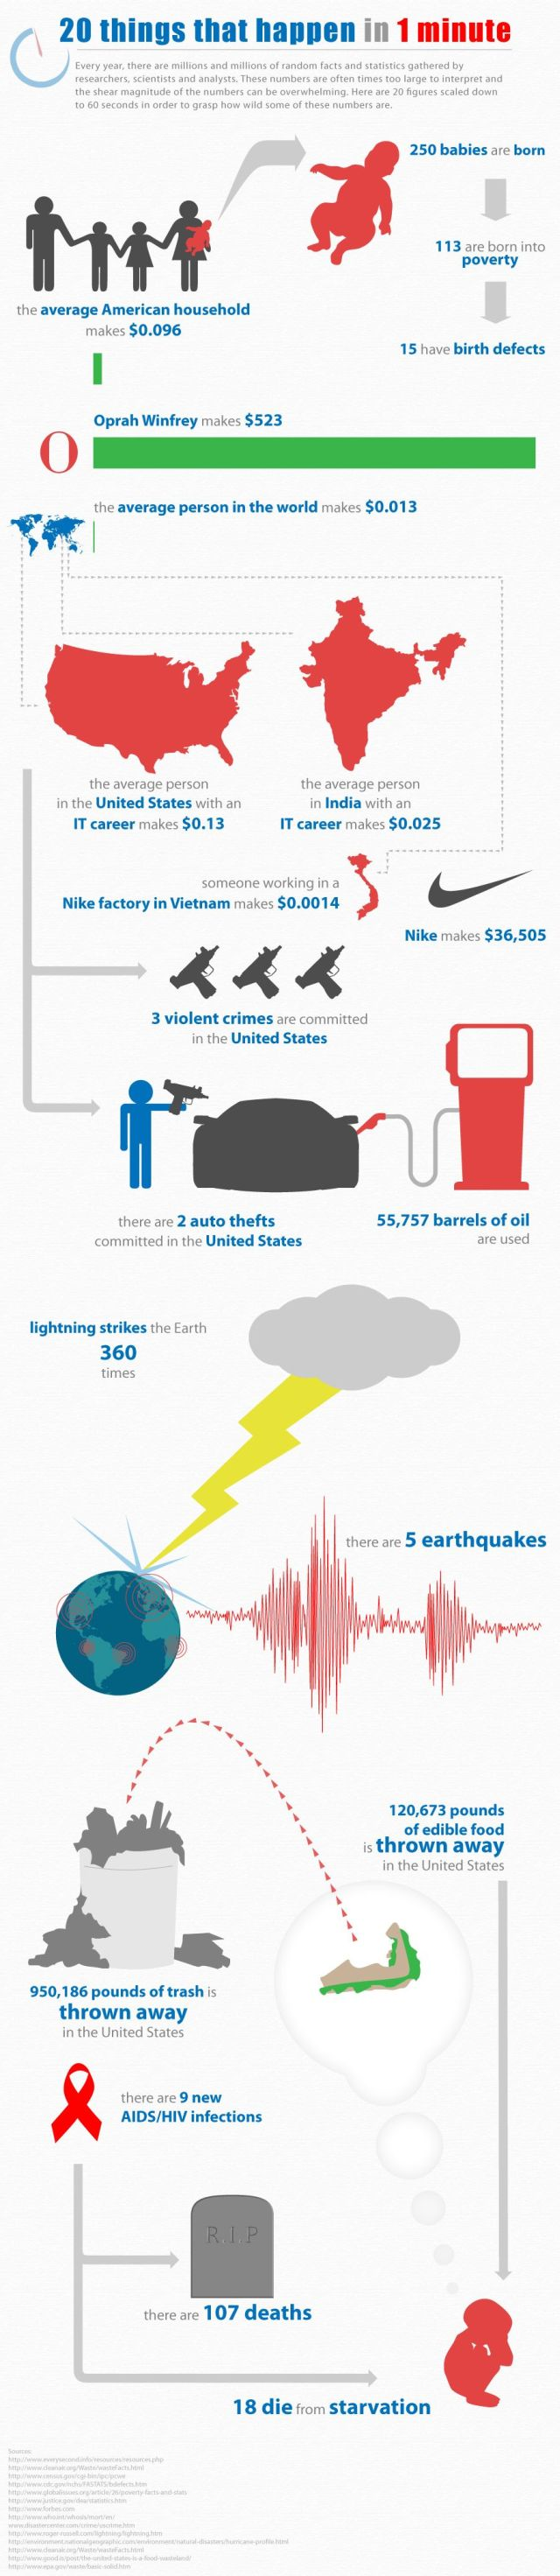 Cool Big Infographic Pictures (45 pics)